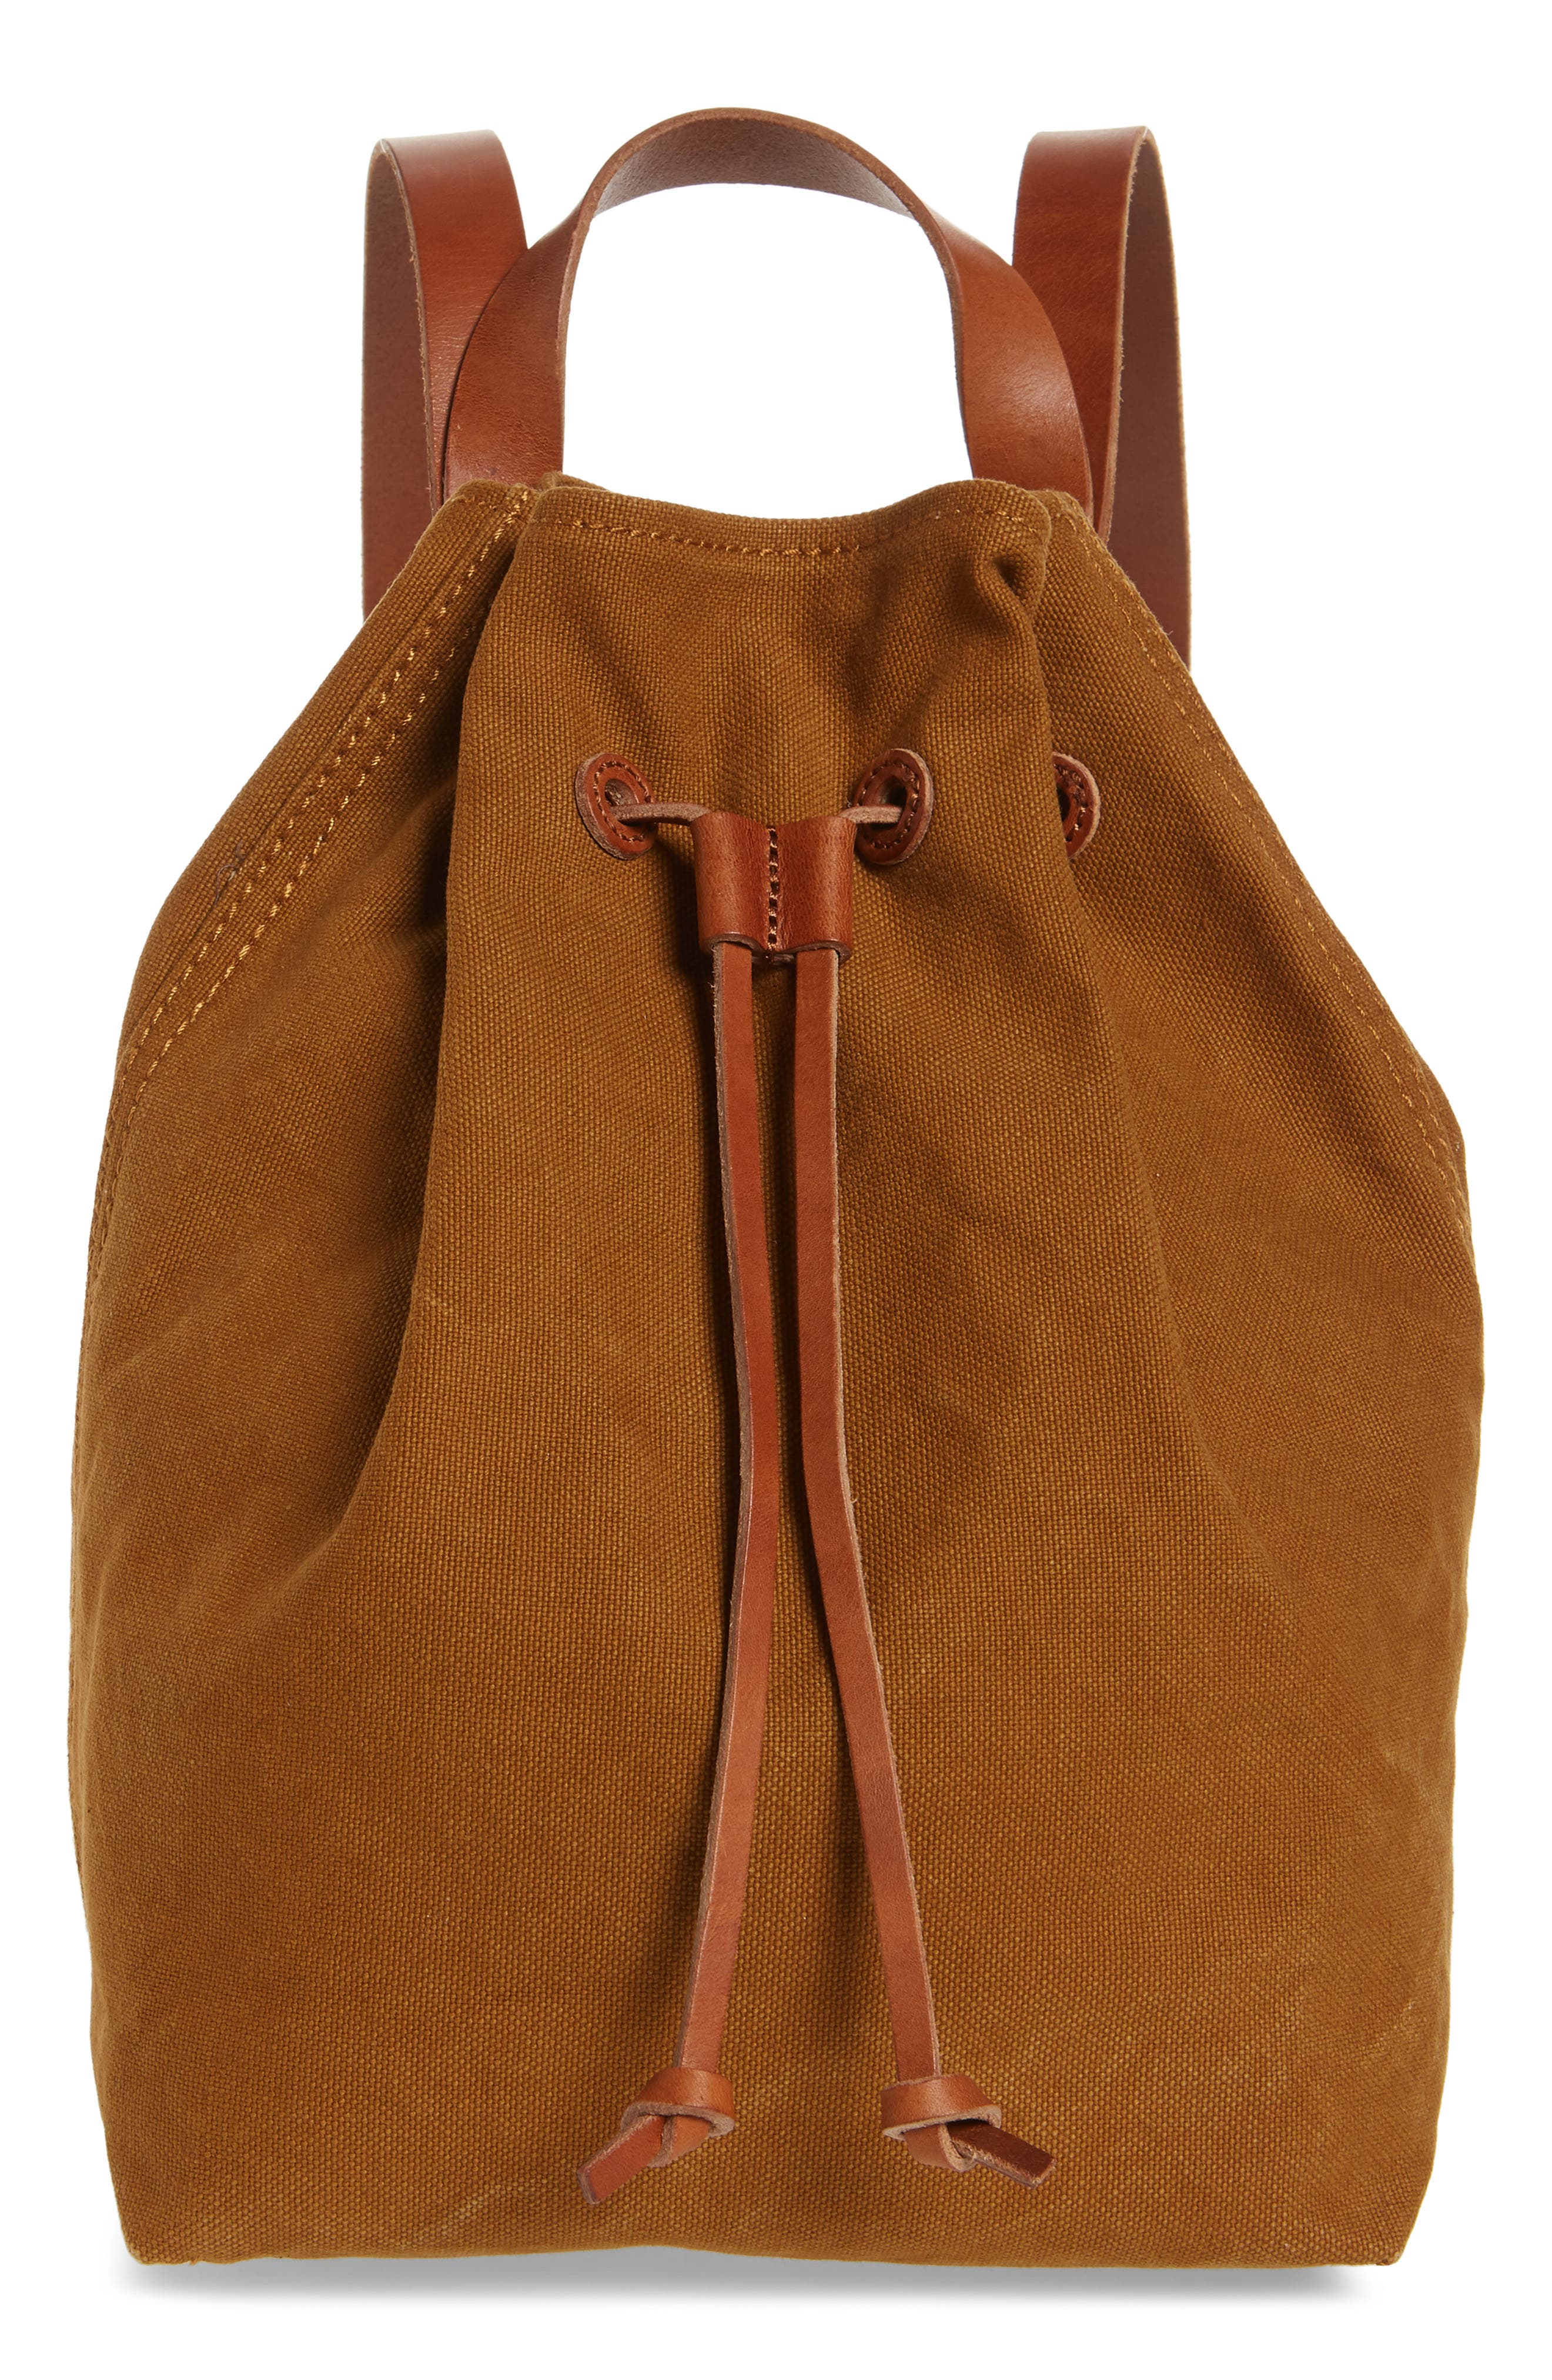 SOMERSET CANVAS BACKPACK - BROWN